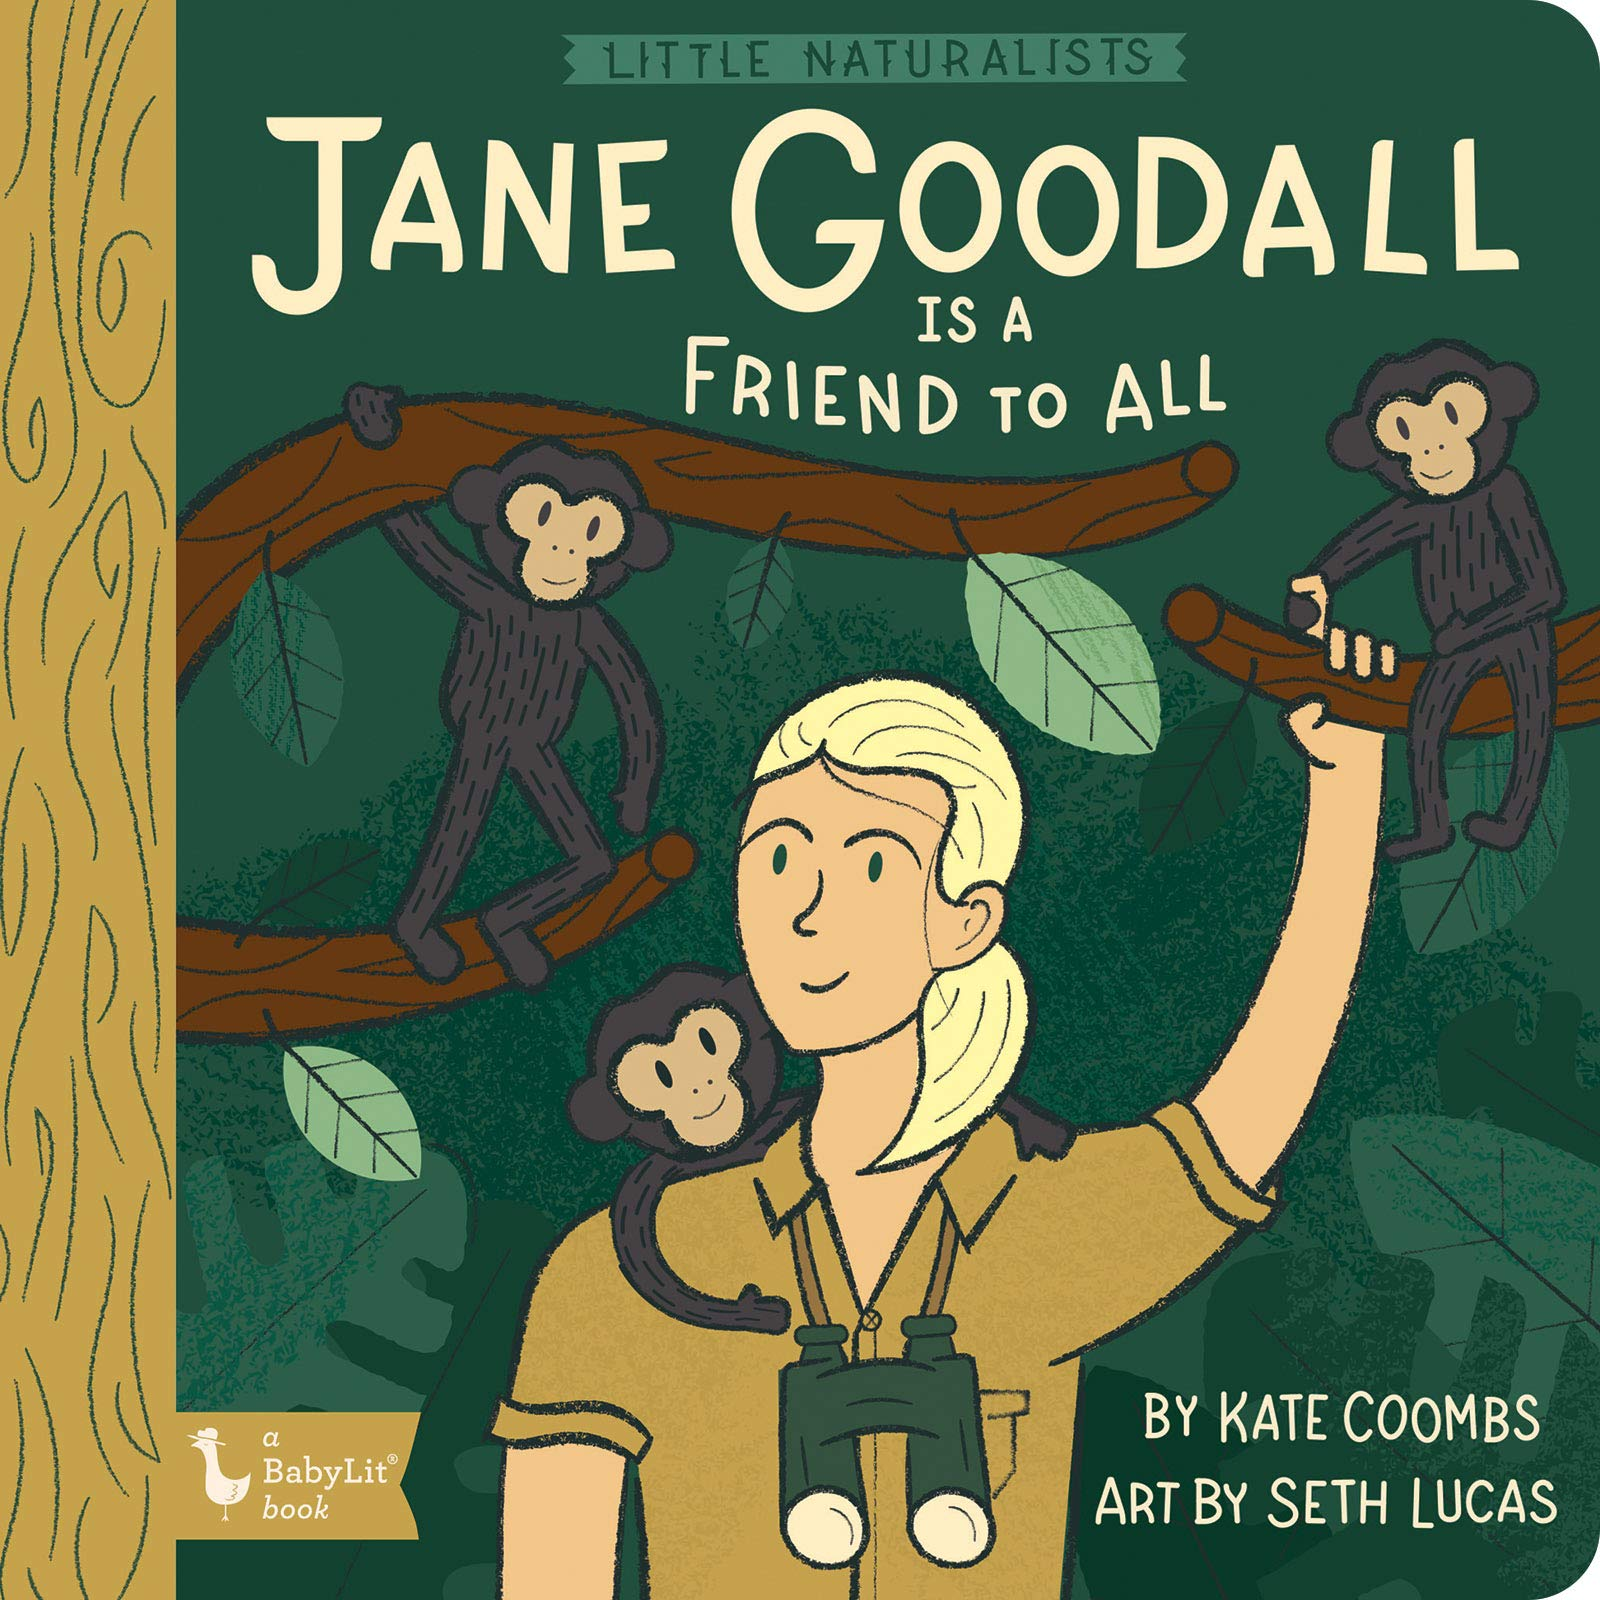 Jane Goodall: Little Naturalists